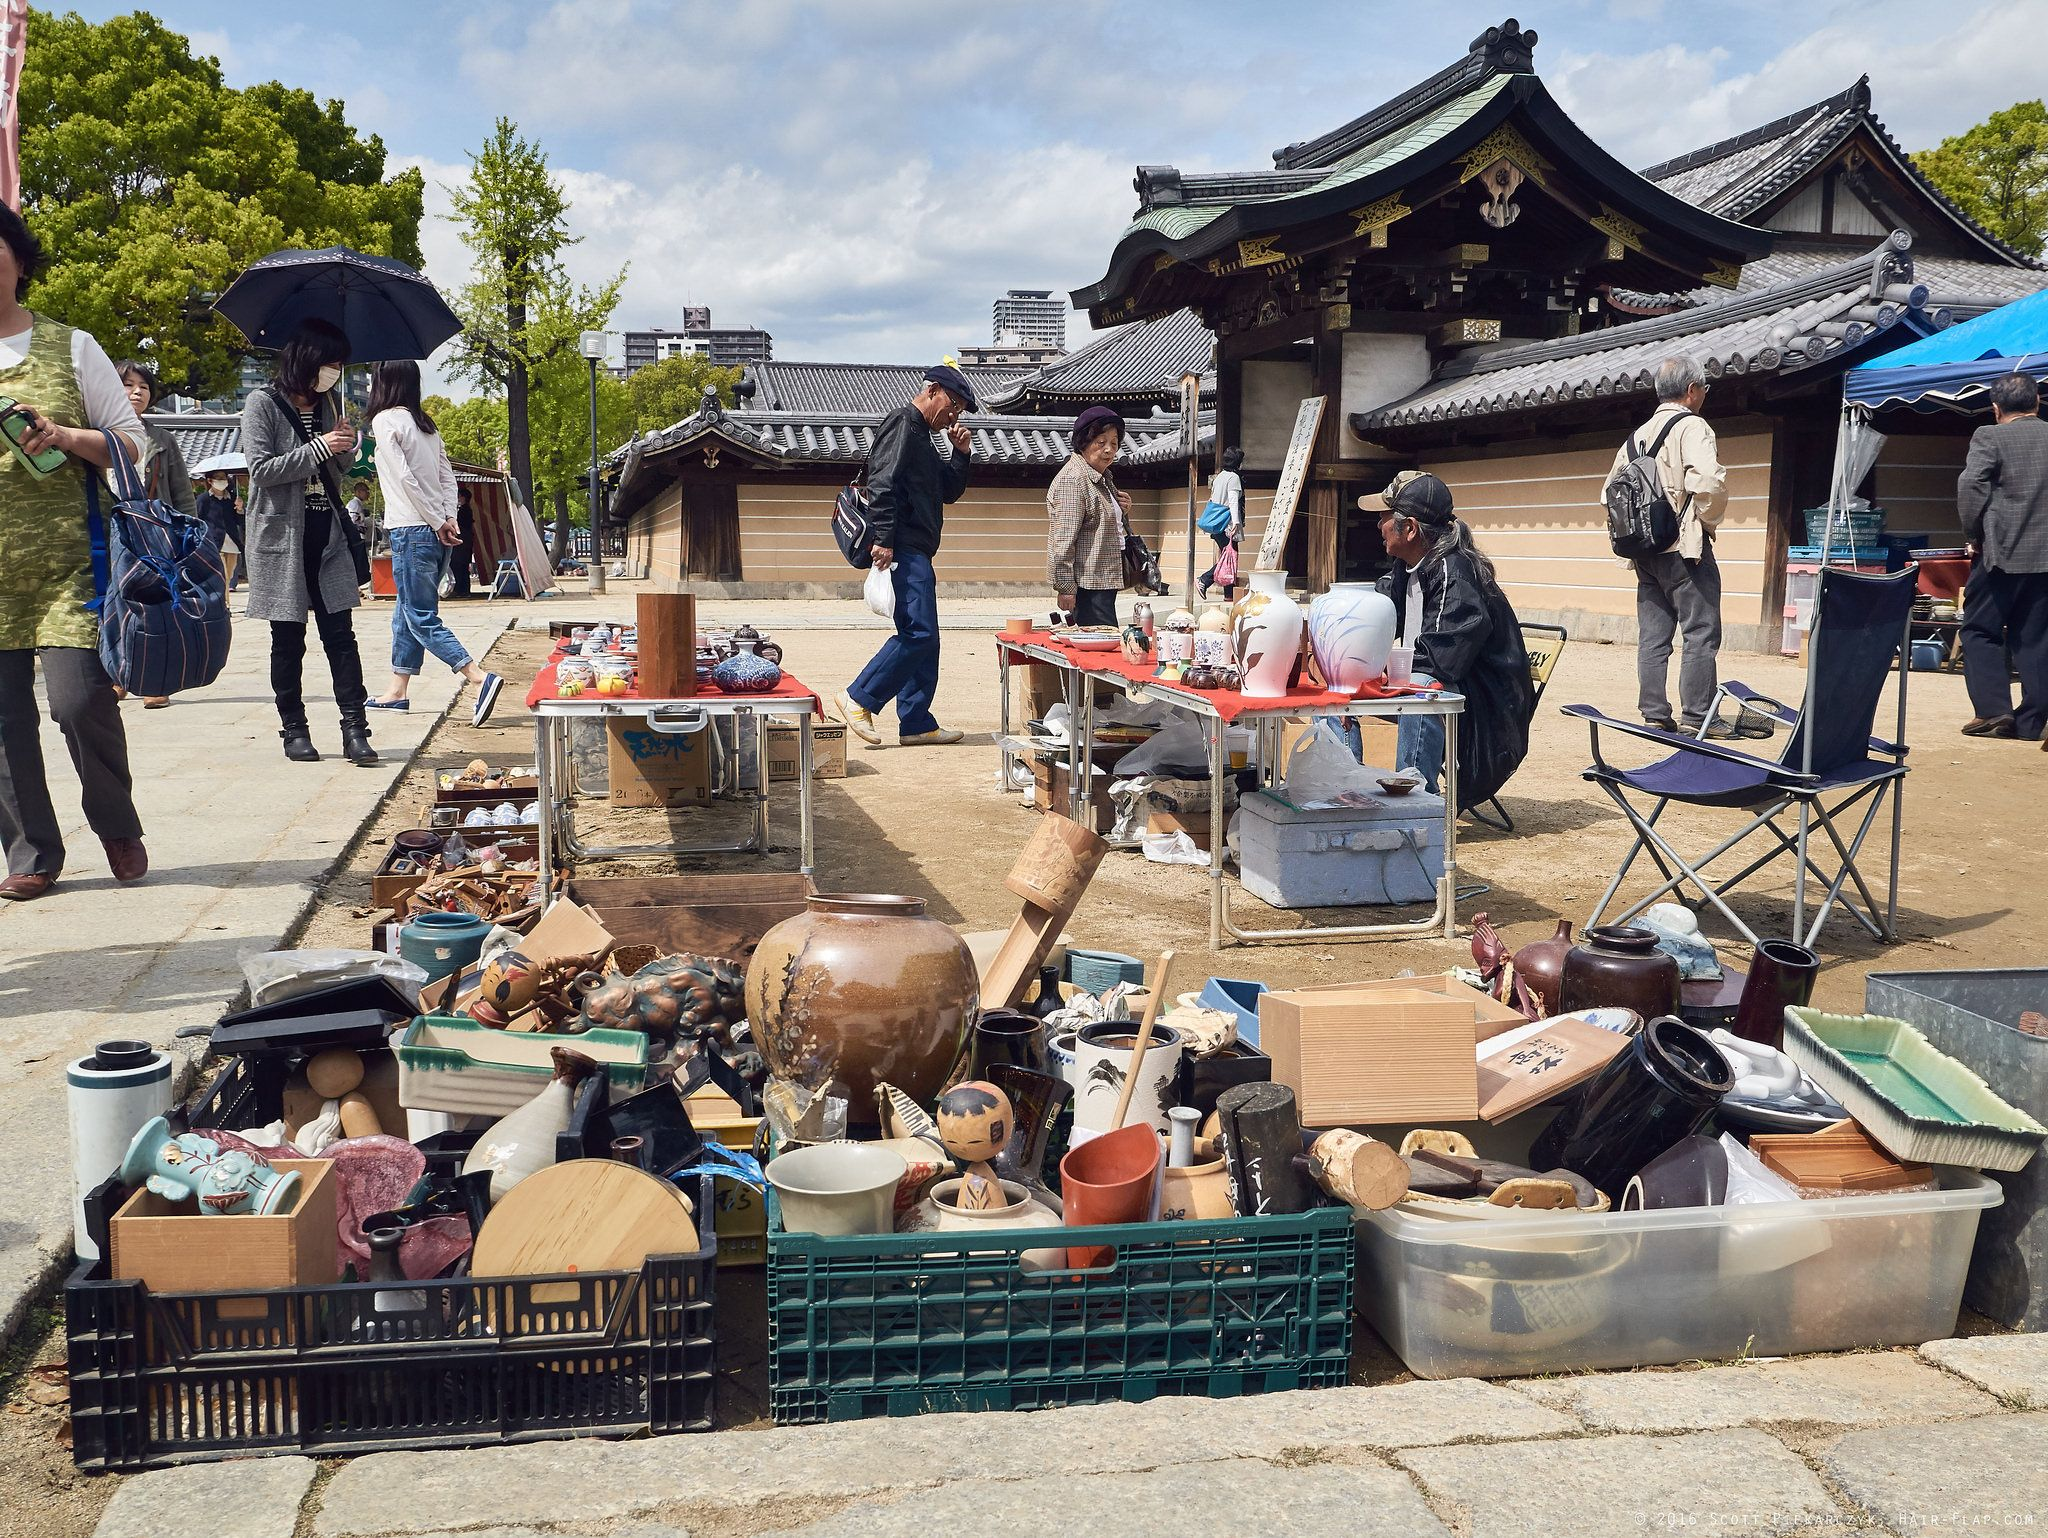 each month on 21th/22th is a flea market on the grounds of Shitennoji temple, Osaka